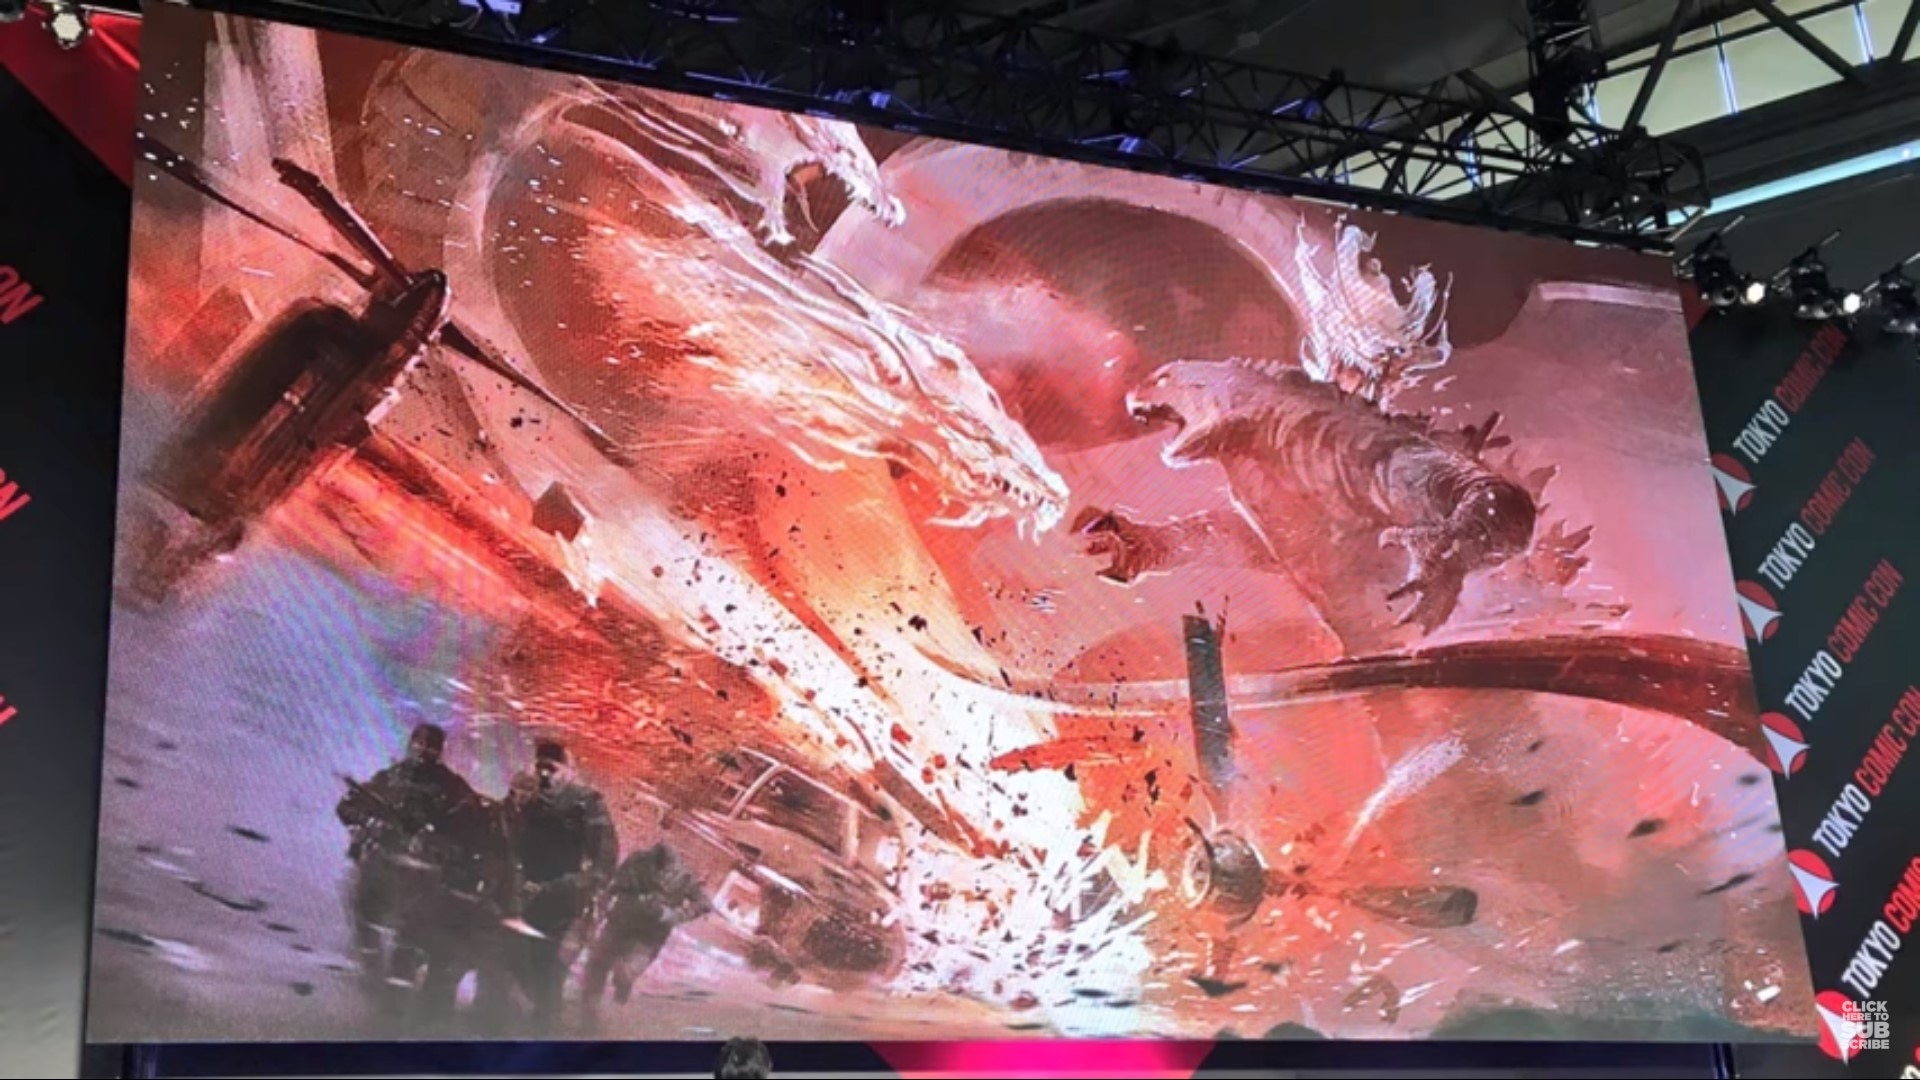 Godzilla King of the Monsters Concept Art 1 - (Spoilers) Concept Art from Tokyo Comic-Con Reveals Major Clashes in GODZILLA: KING OF THE MONSTERS